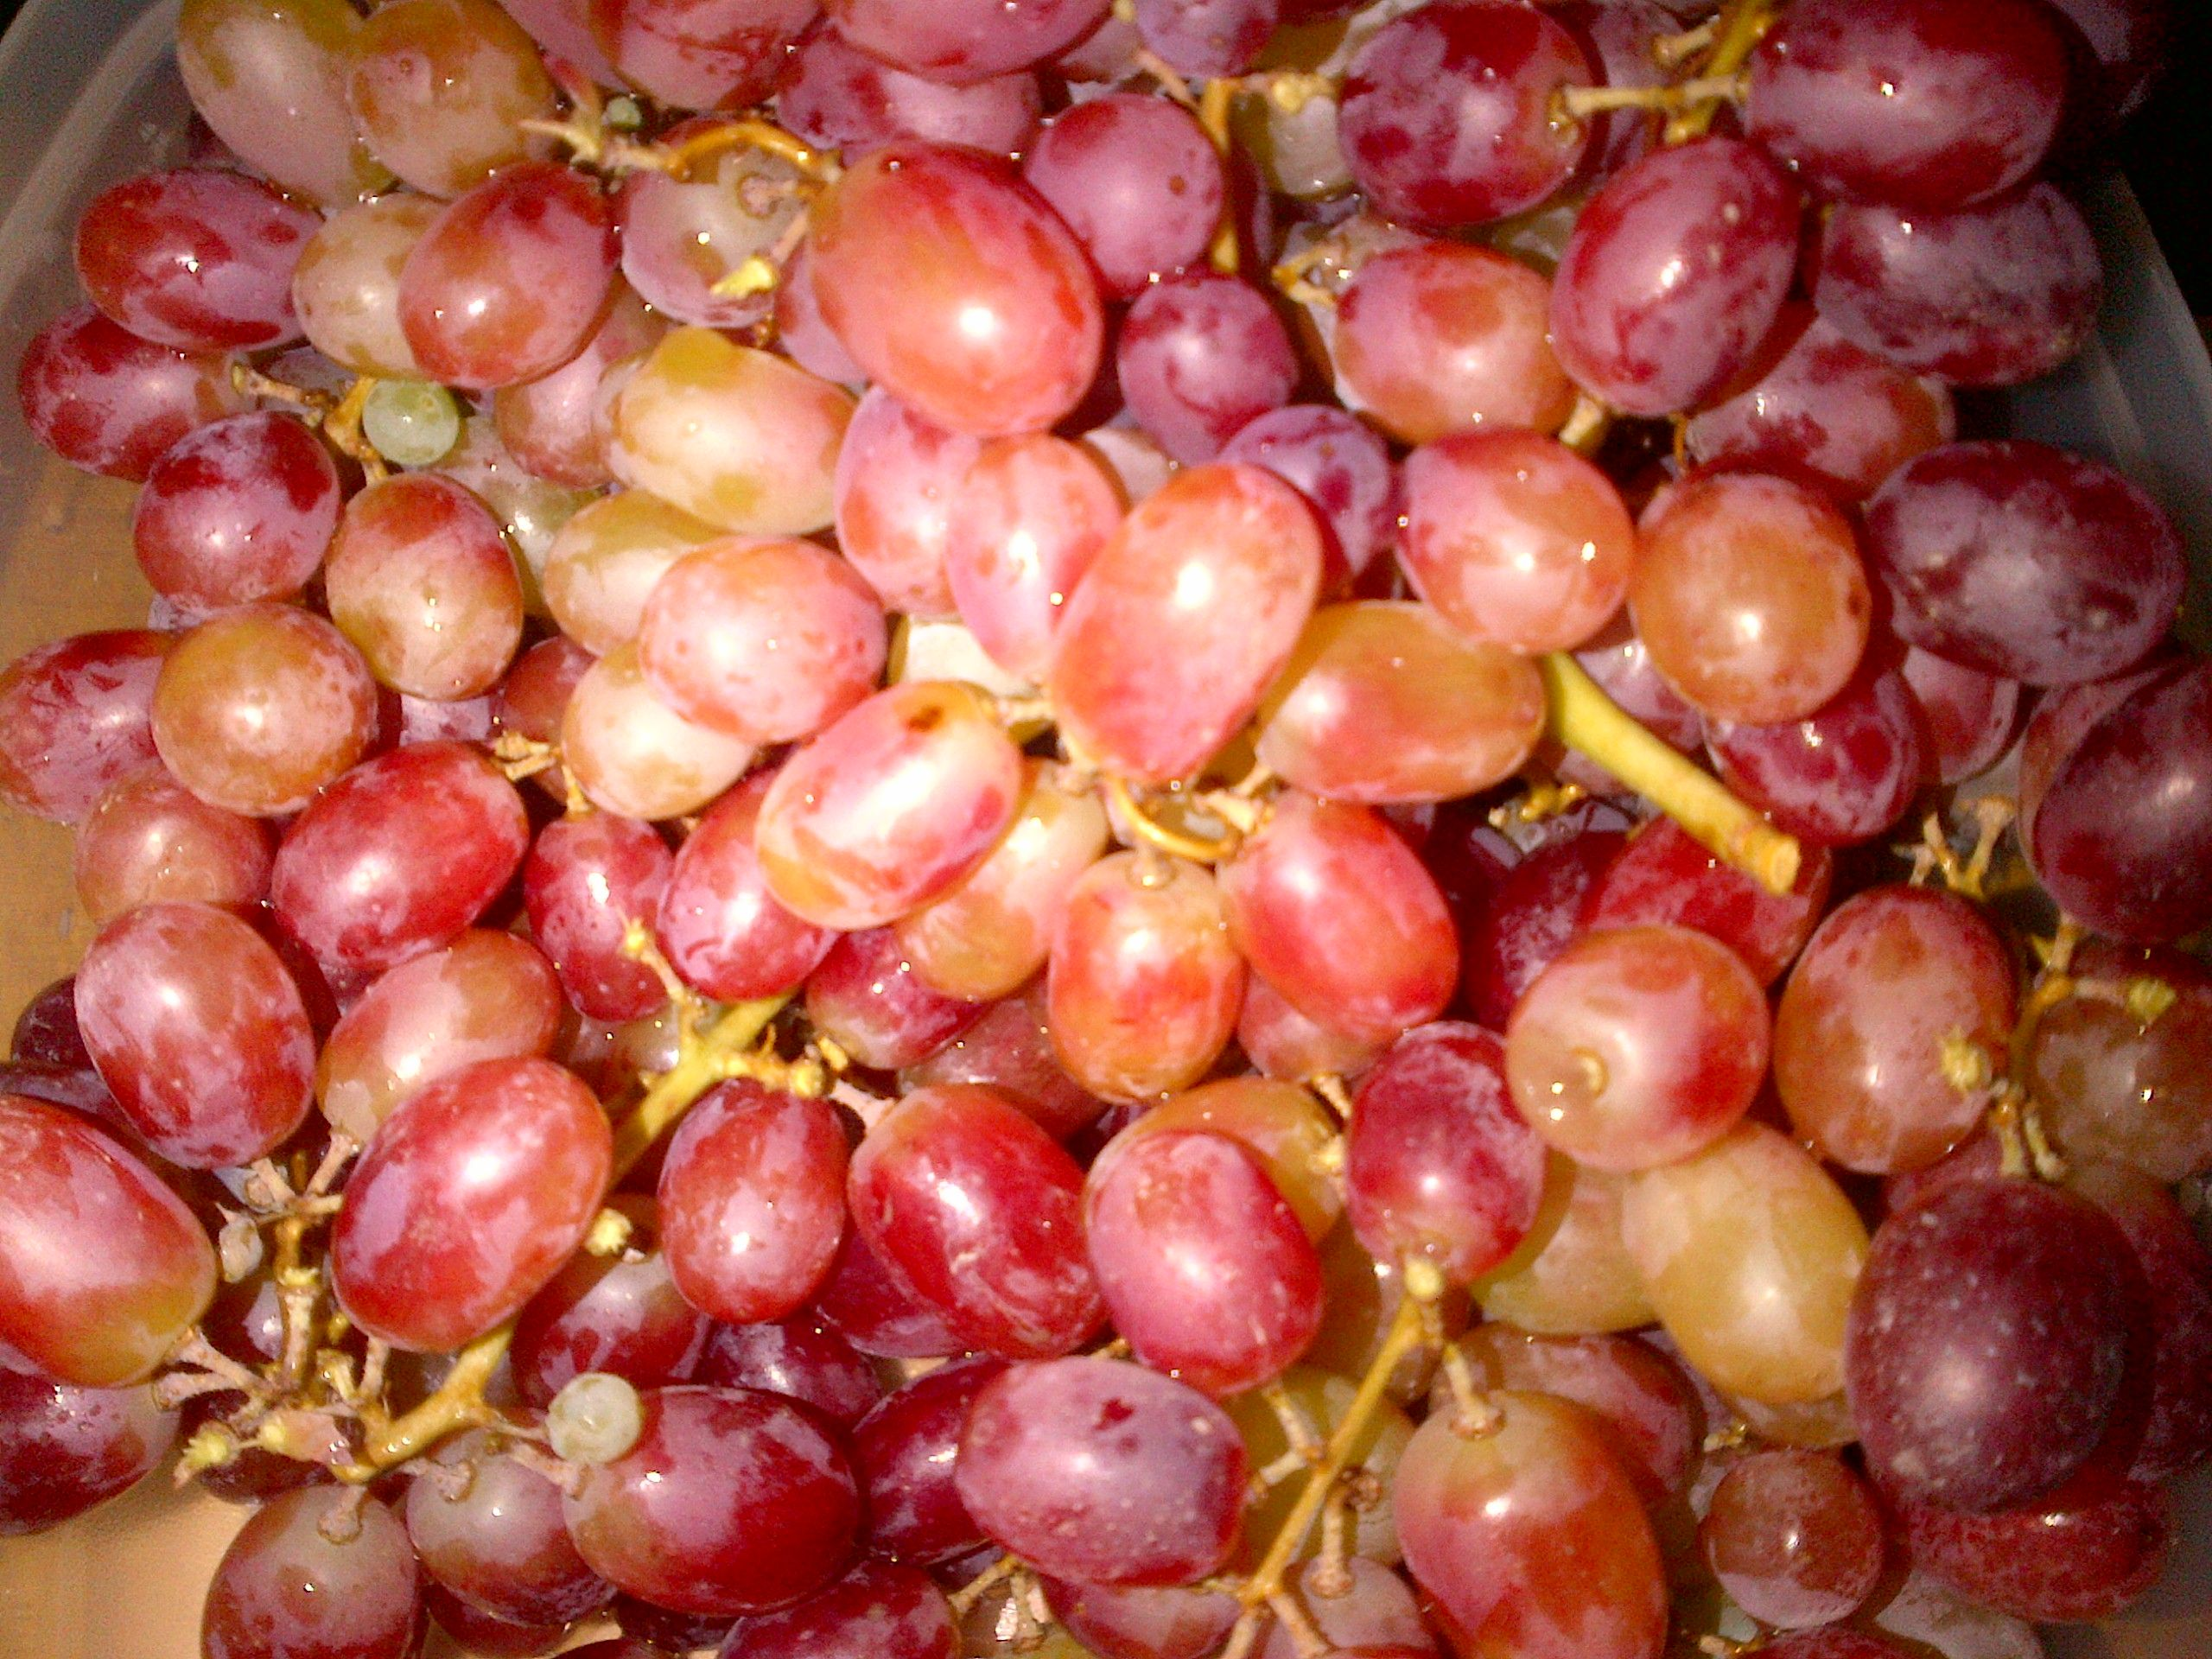 Cuban Tradition = Eat 12 grapes just after midnight on New